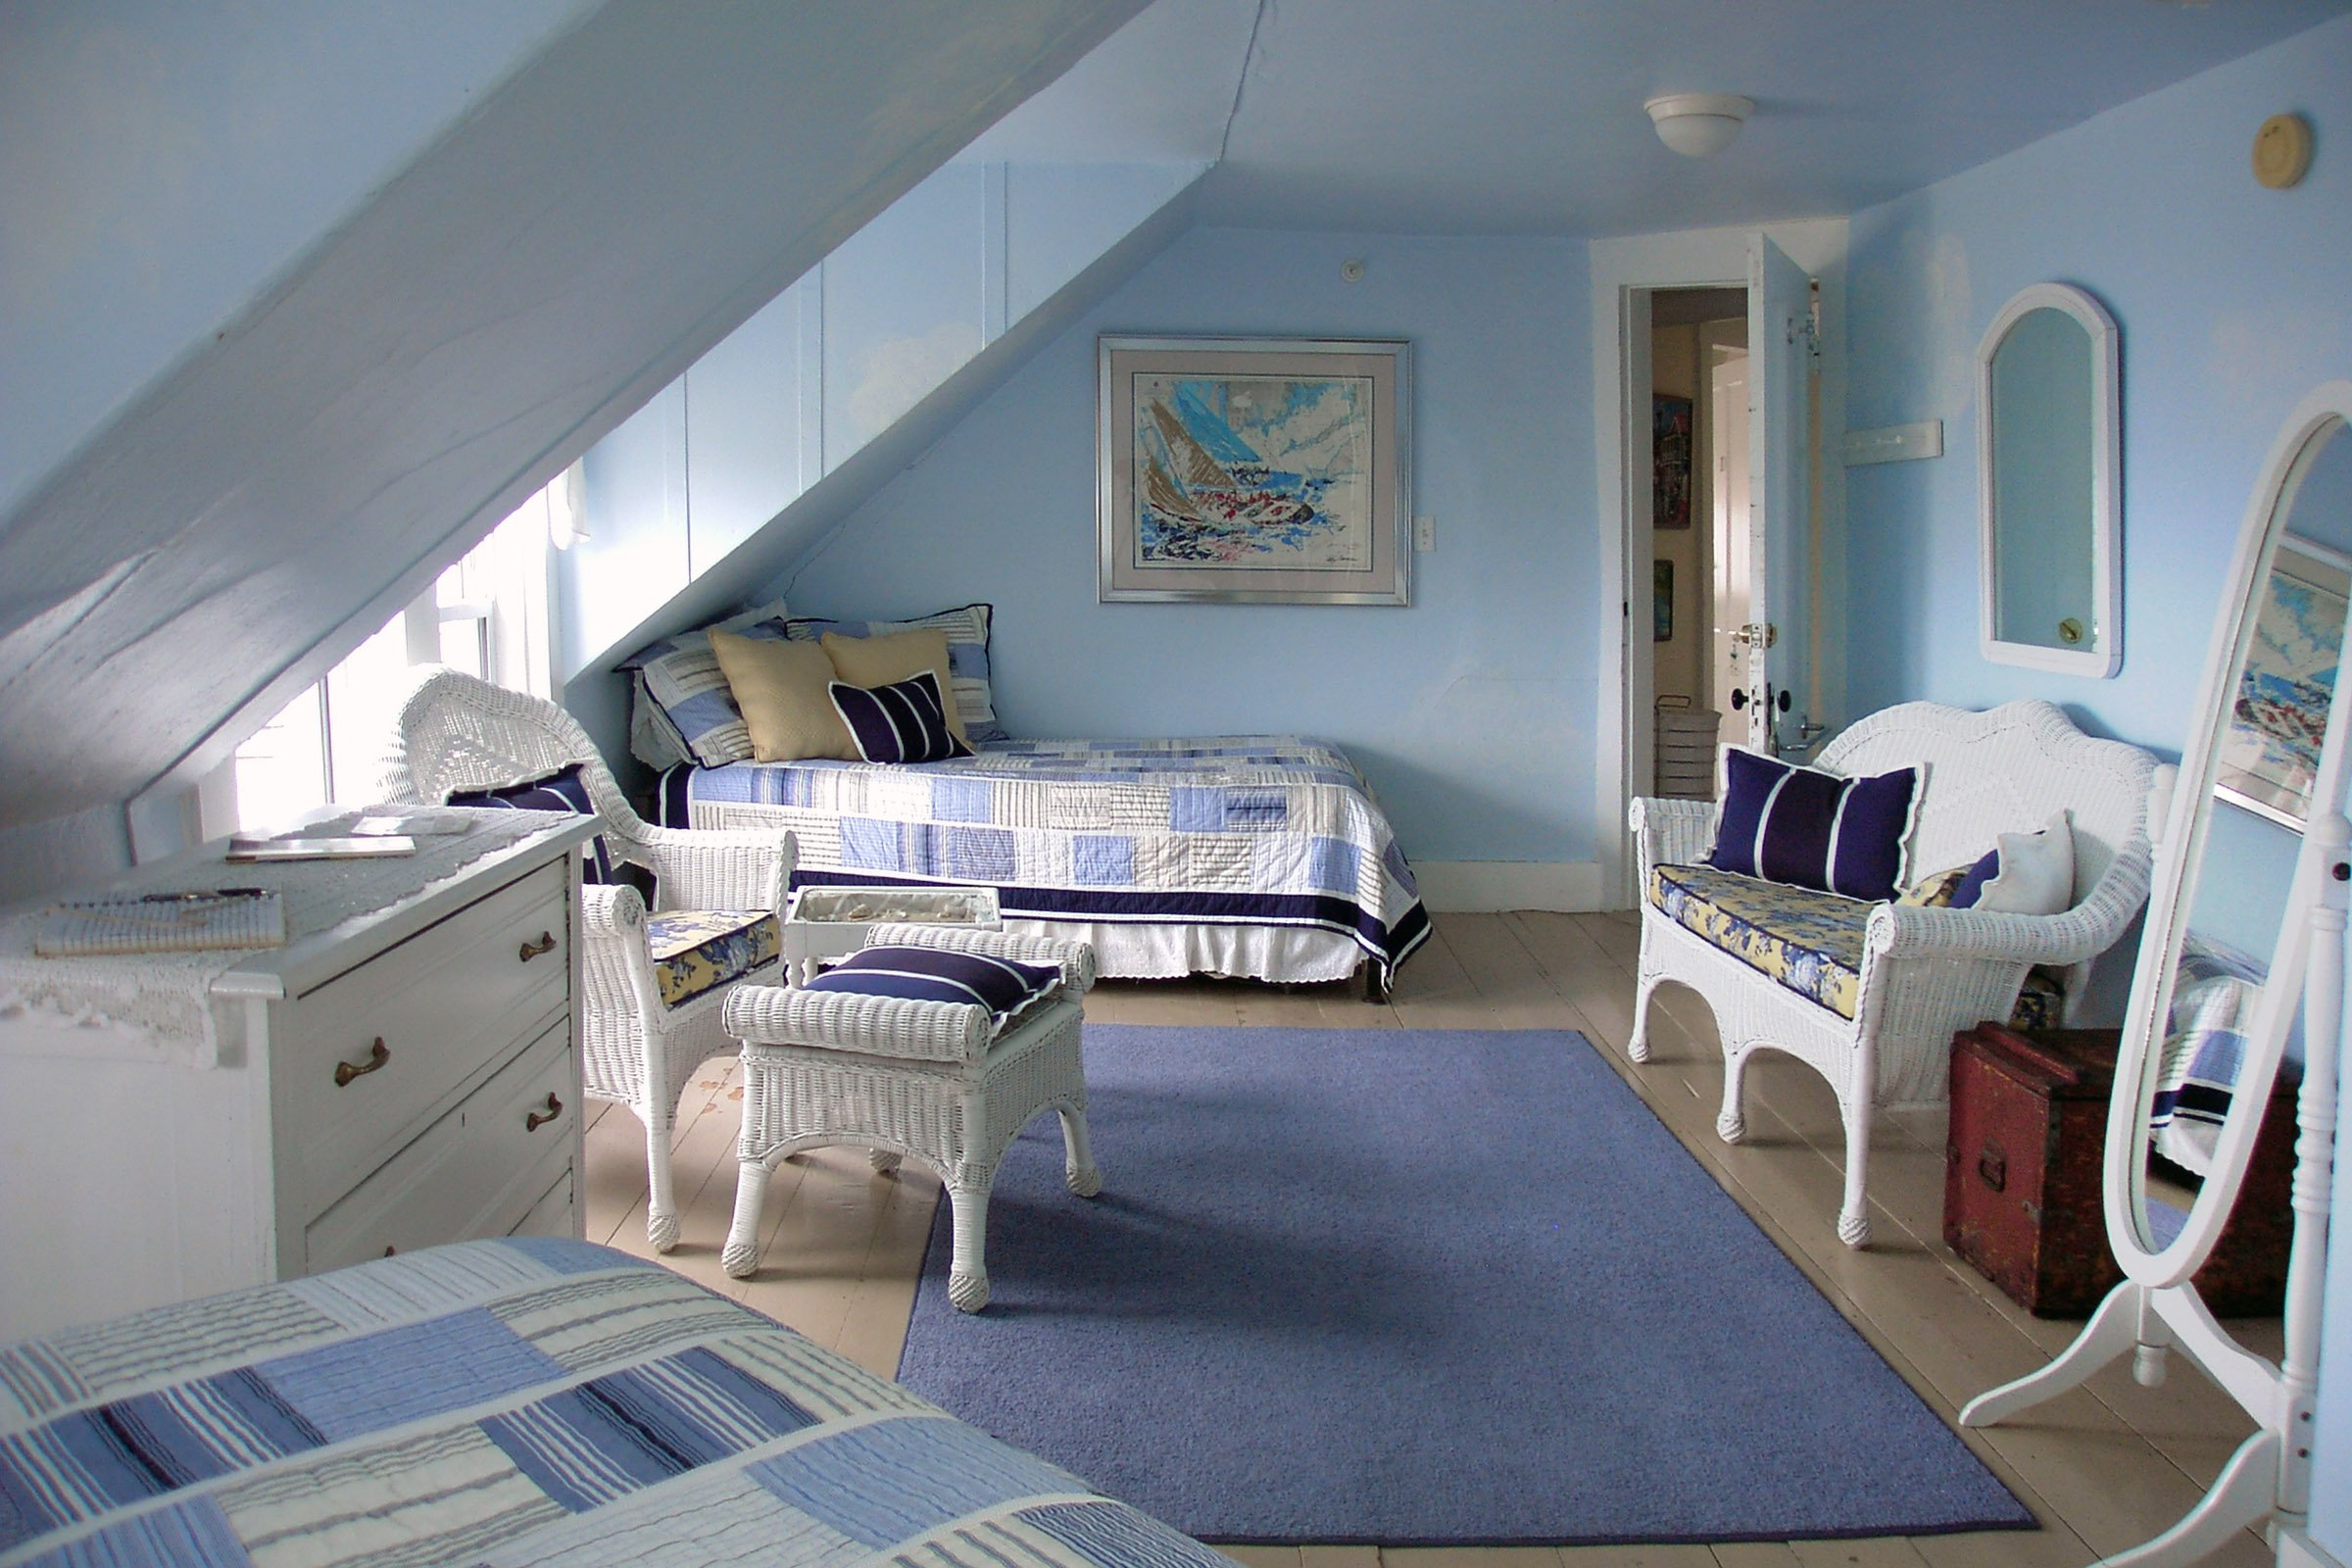 Guestroom #9, One double bed, one twin bed w/trundle, private bath, ocean view